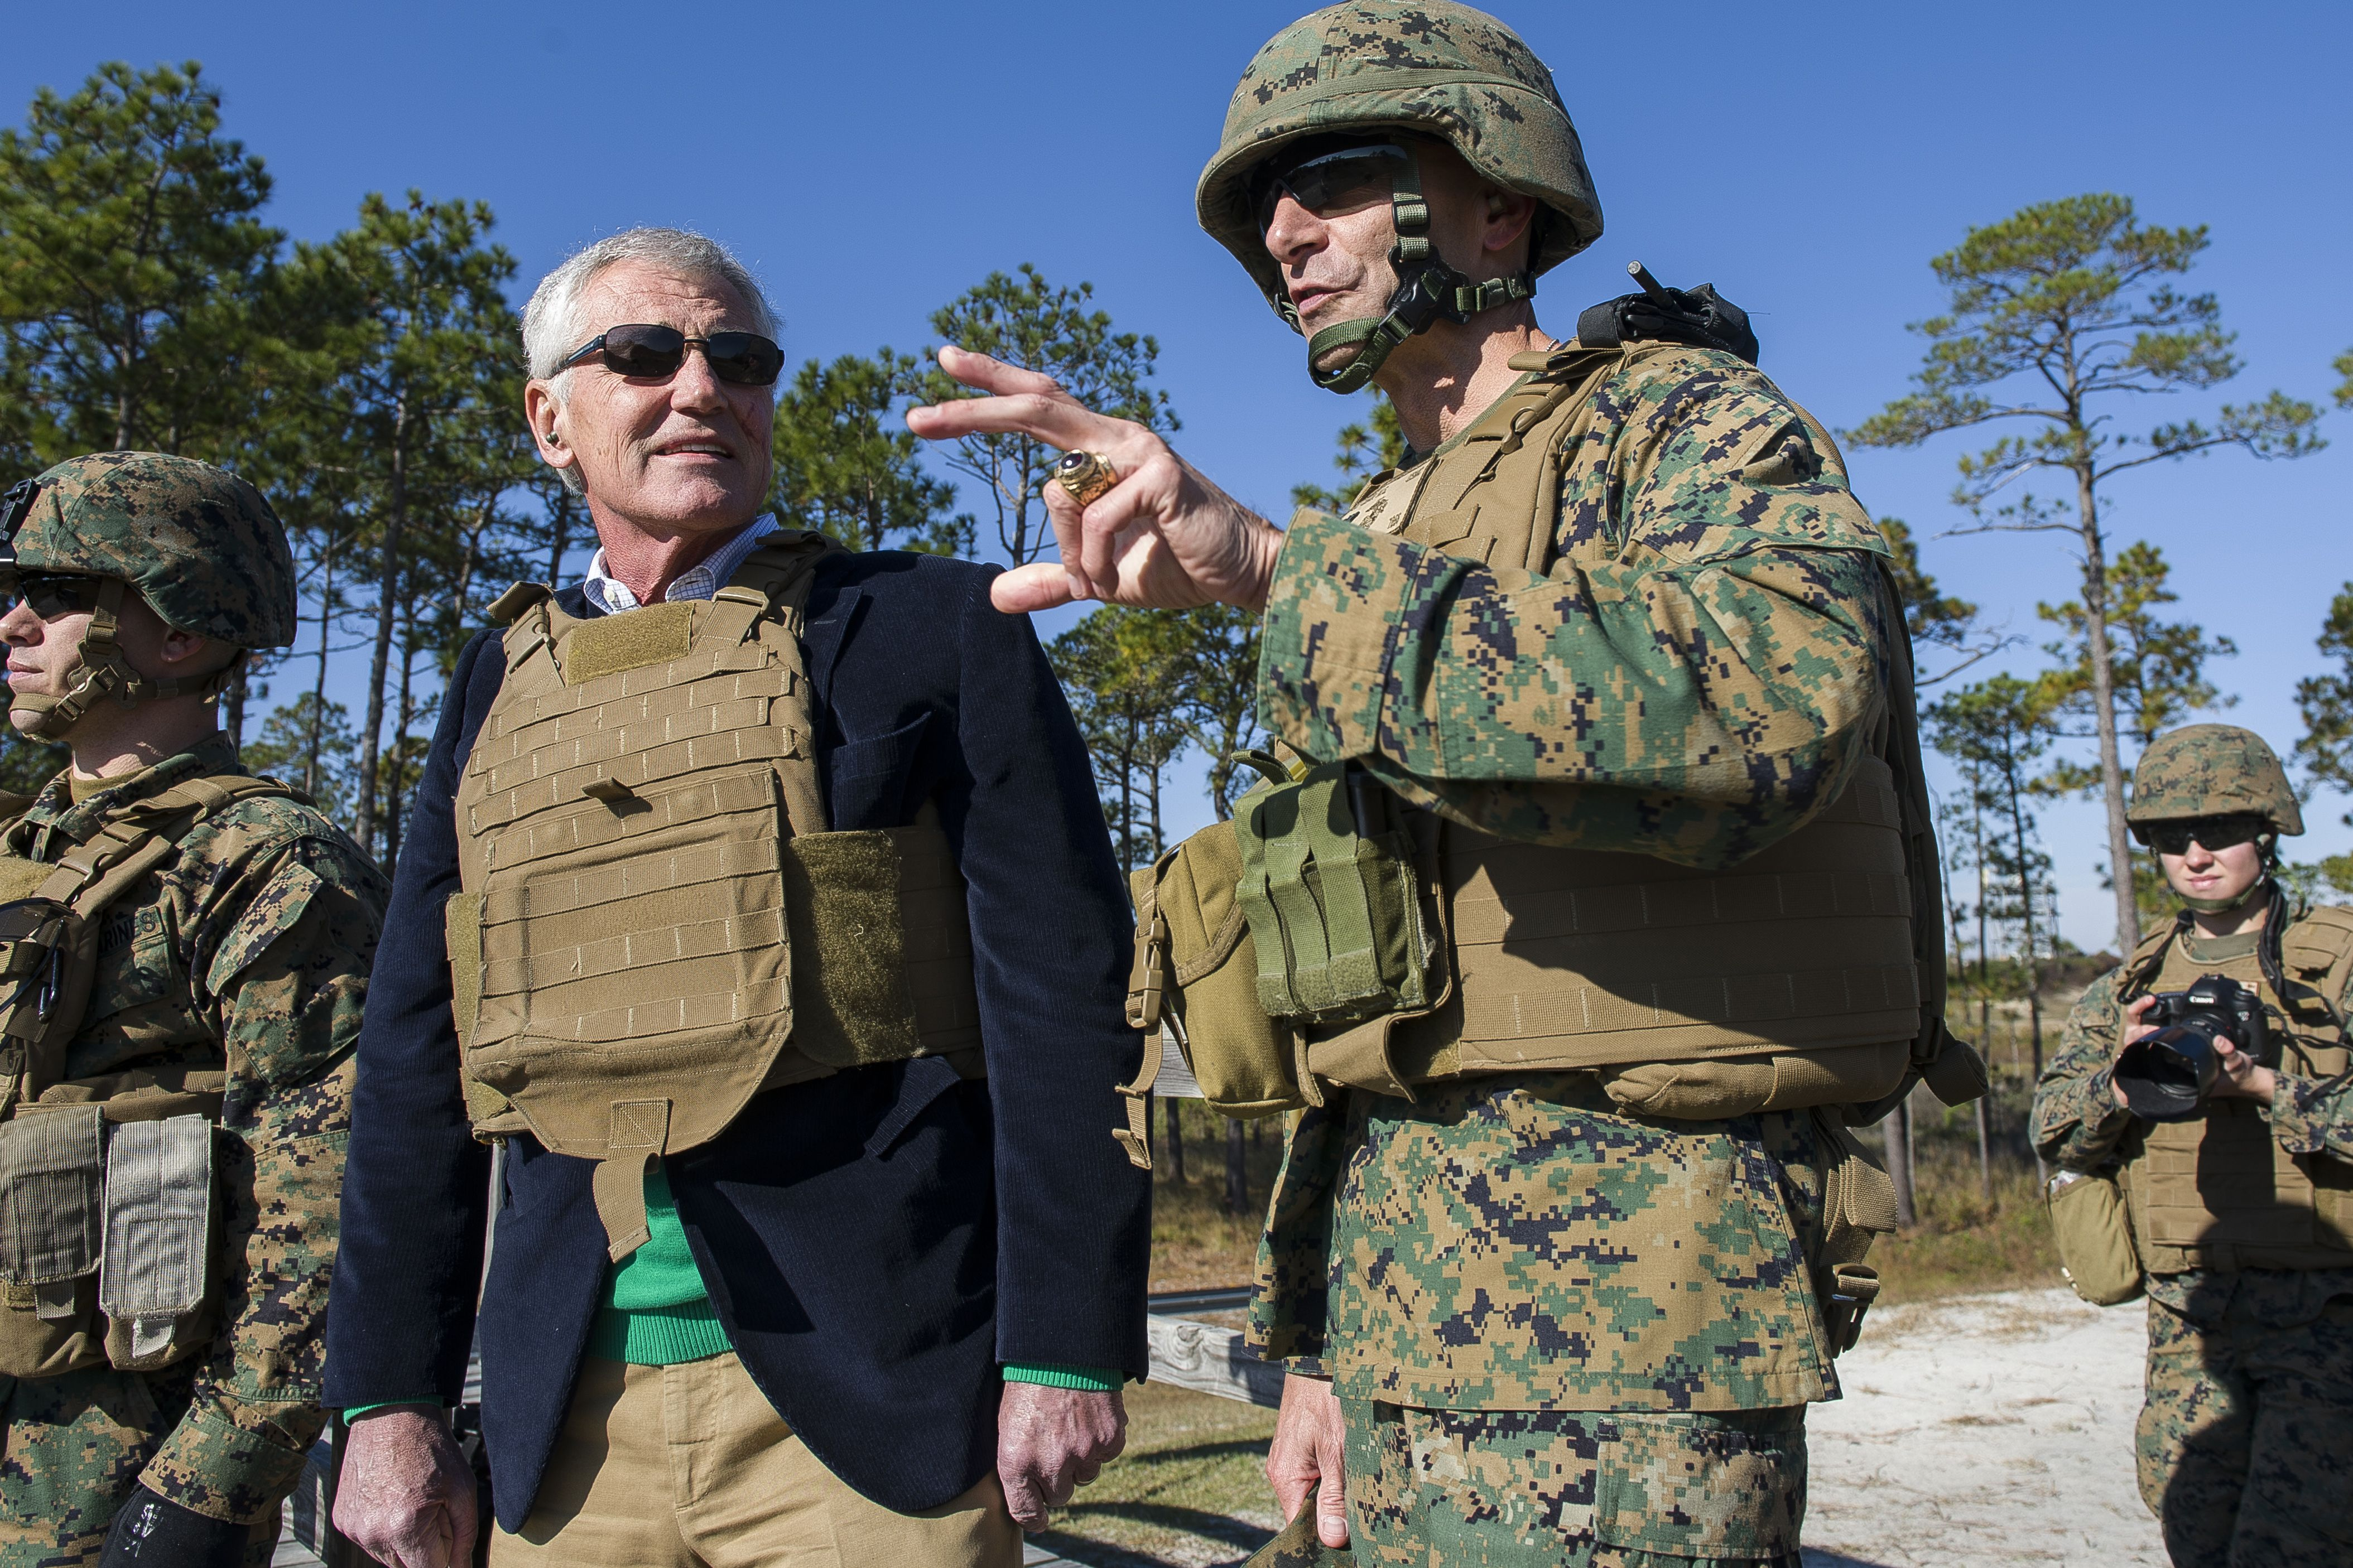 Defense Secretary Chuck Hagel observes female Marines fire shoulder-launched assault weapons on Camp LeJeune, N.C., Nov. 18. 2014. The Marines are assigned to Ground Combat Element Integrated Task Force.